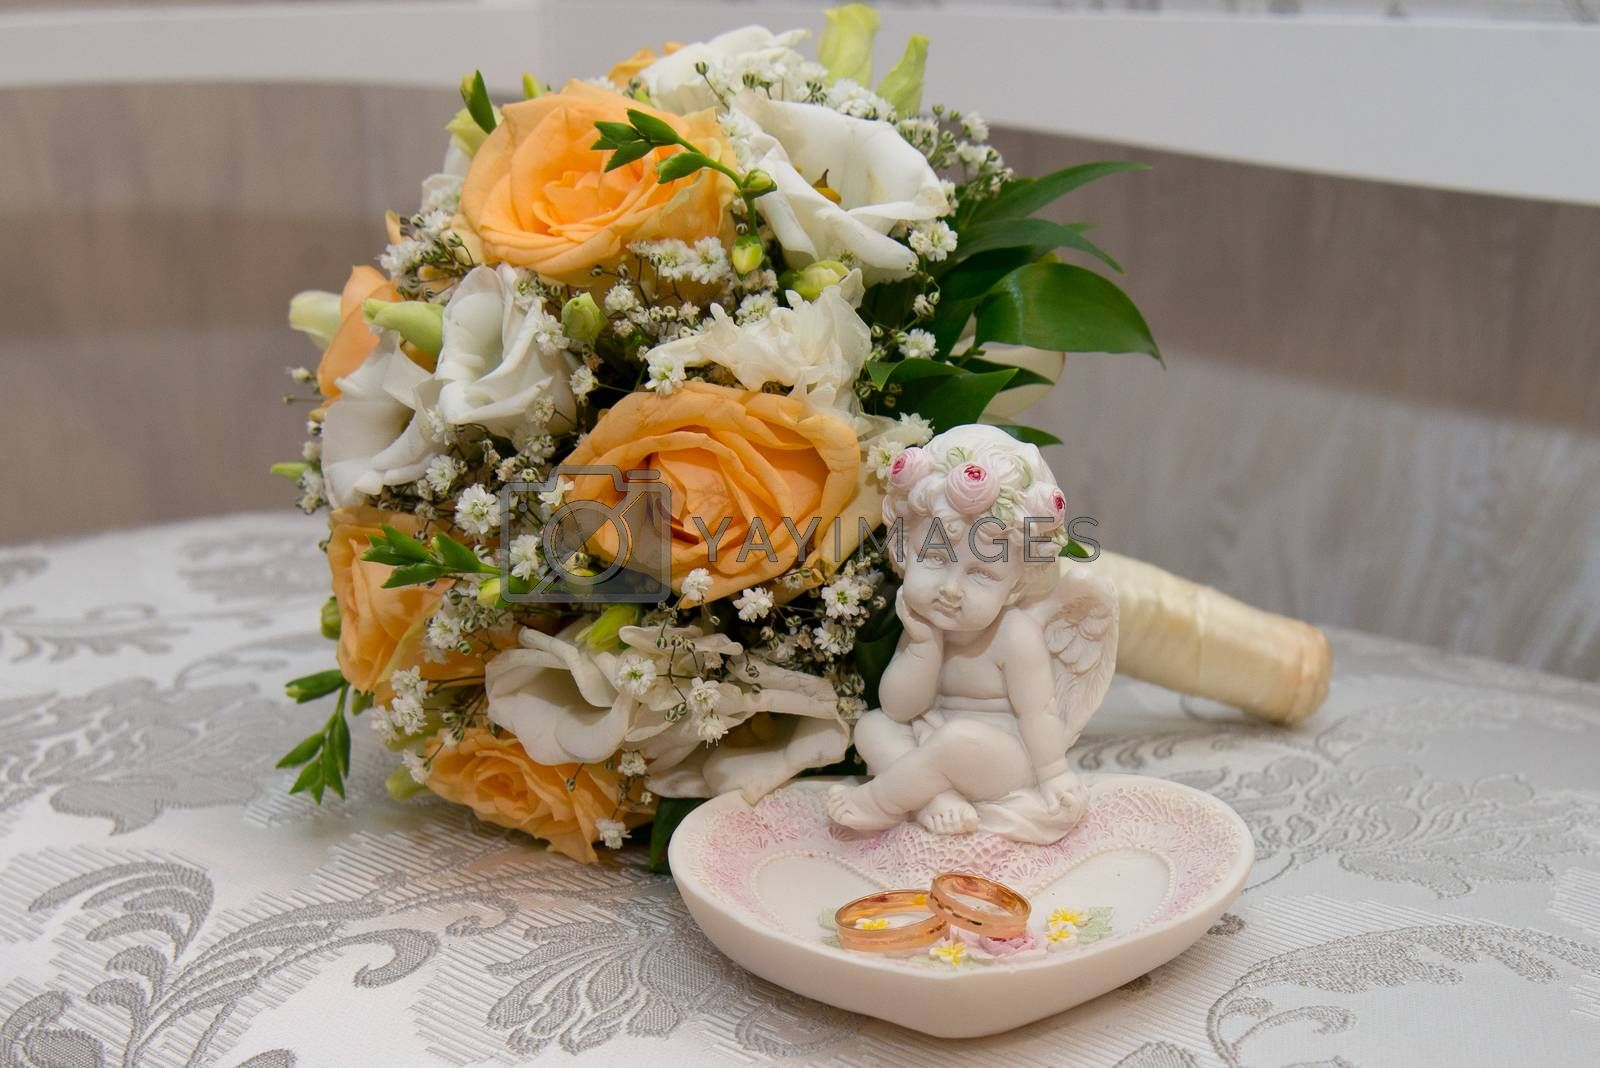 Two beautiful gold wedding rings lie on a platter in a rose shape with the angel sculpture near the bride's bouquet of orange roses and white flowers.